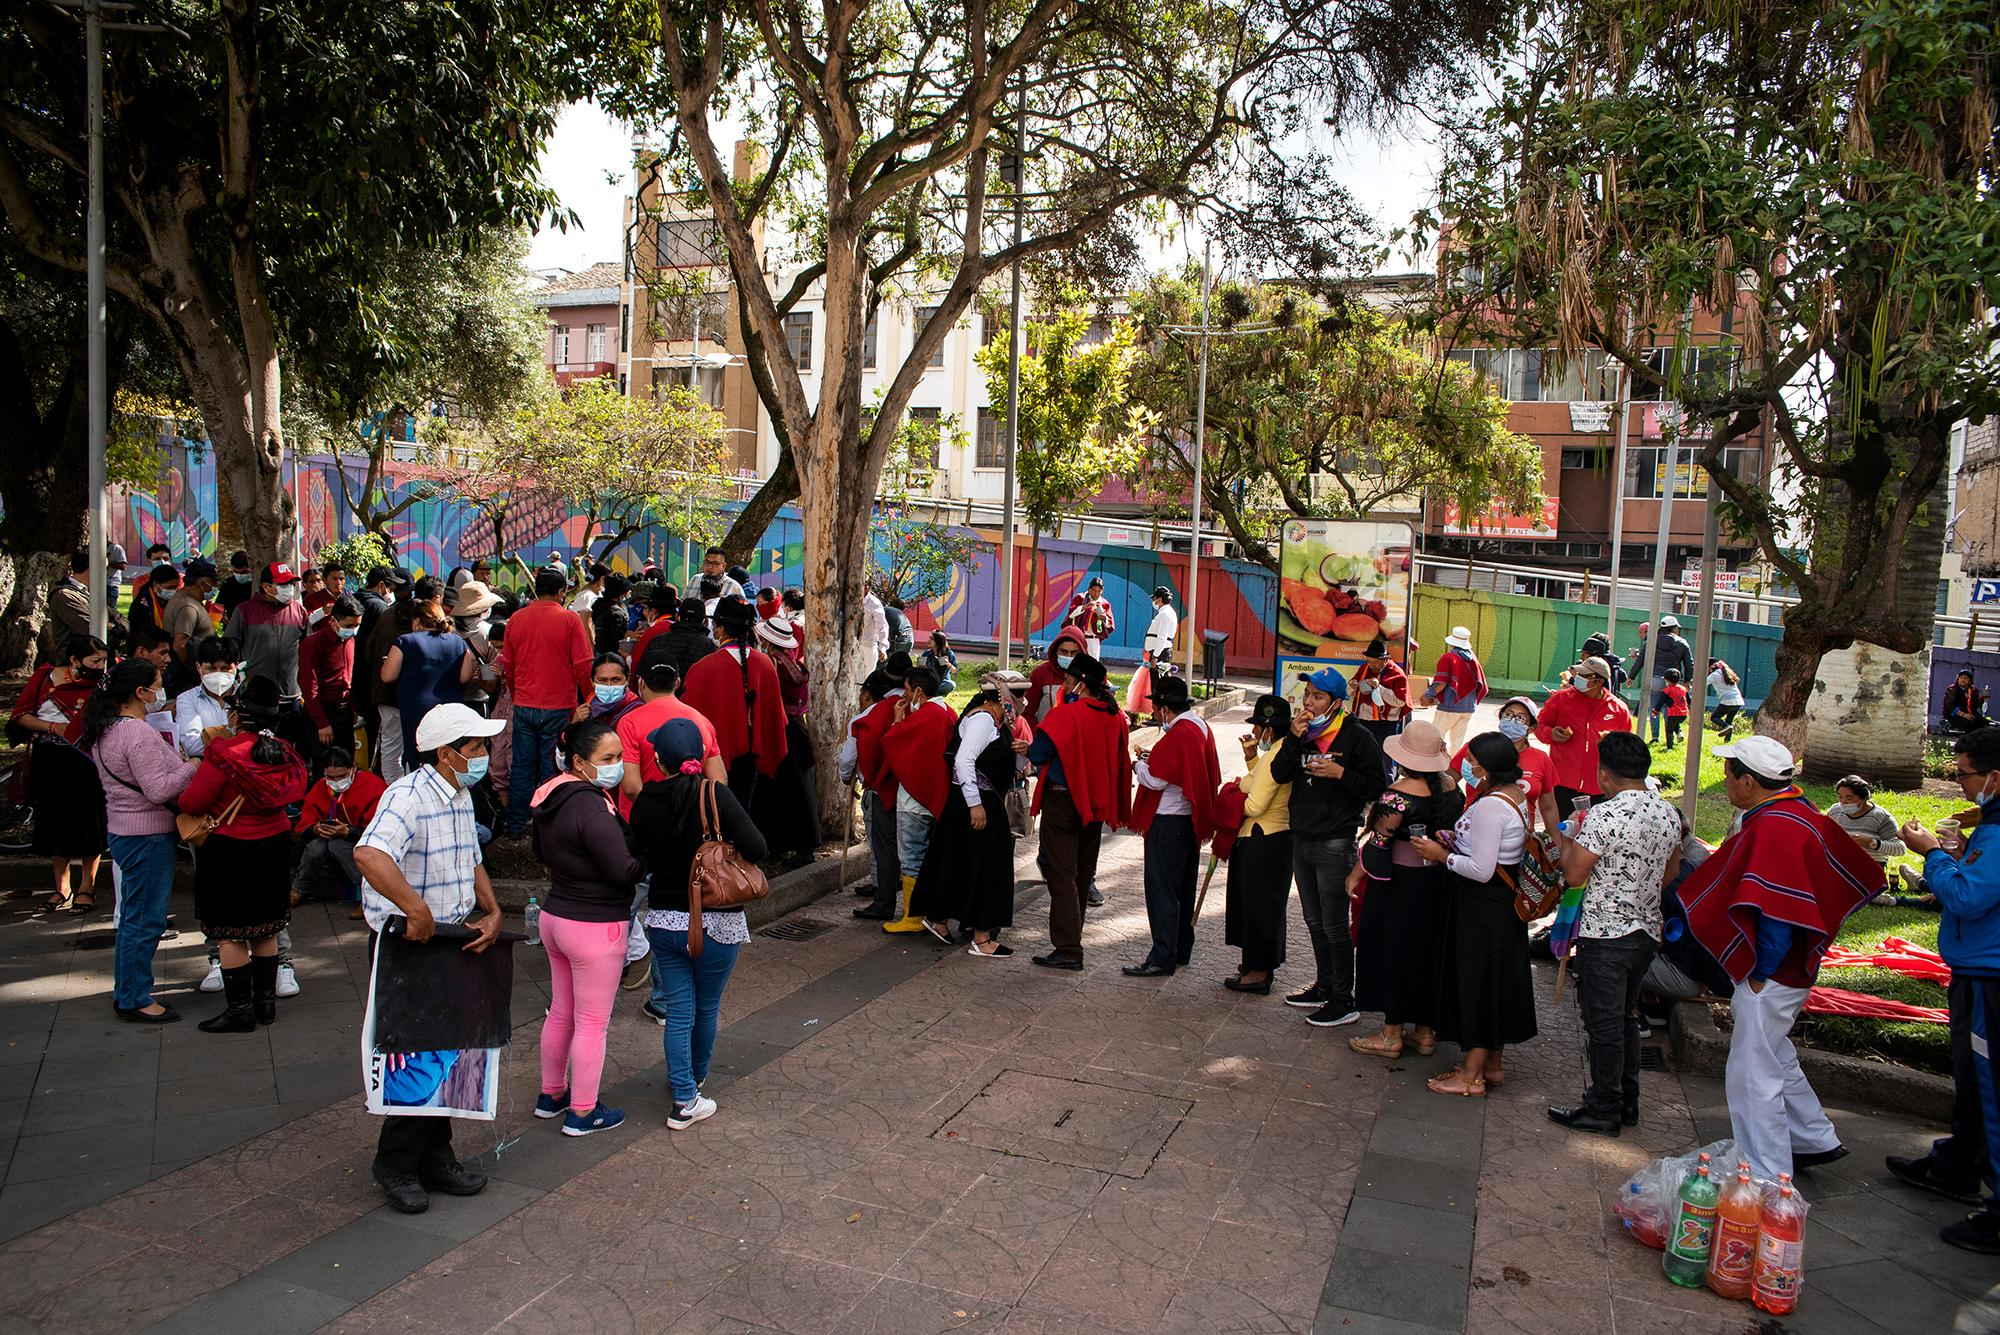 Participants of the National March for Democracy are lining up to receive the lunch on the afternoon of February 21 at Parque 12 de Noviembre in Ambato, Ecuador. During the march, they have community meals, where several participants prepare and provide food to their partners. Johis Alarcón for The New York Times.